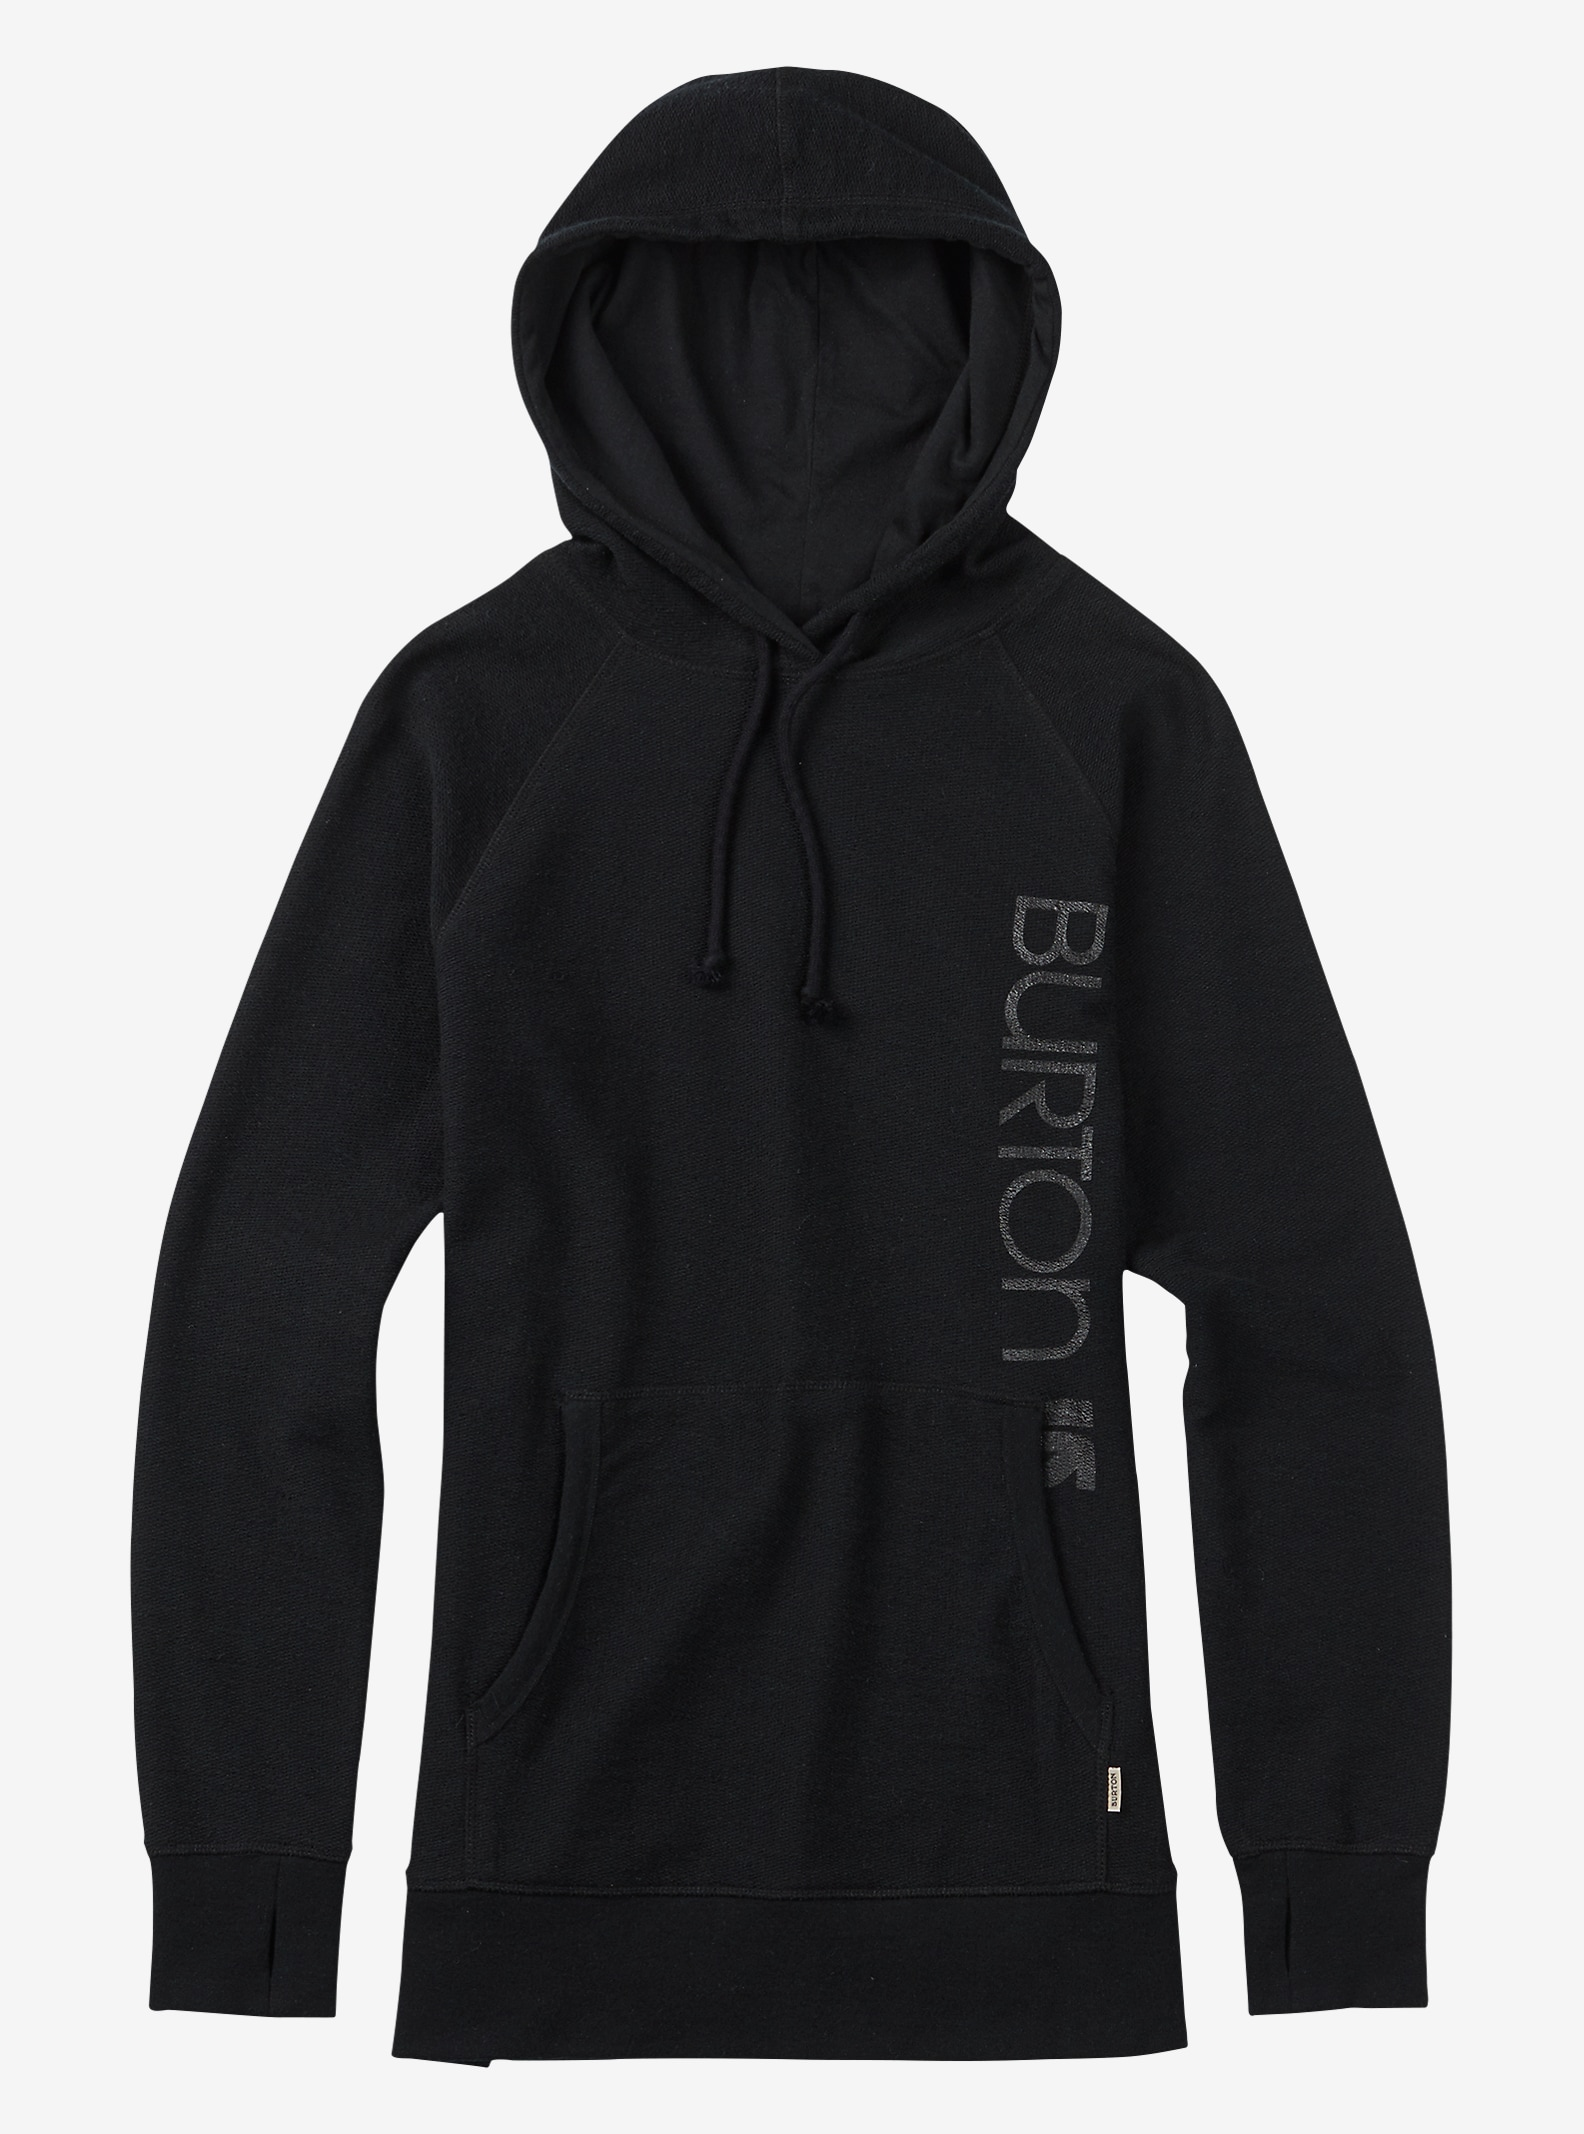 Burton Custom Antidote Pullover Hoodie shown in True Black